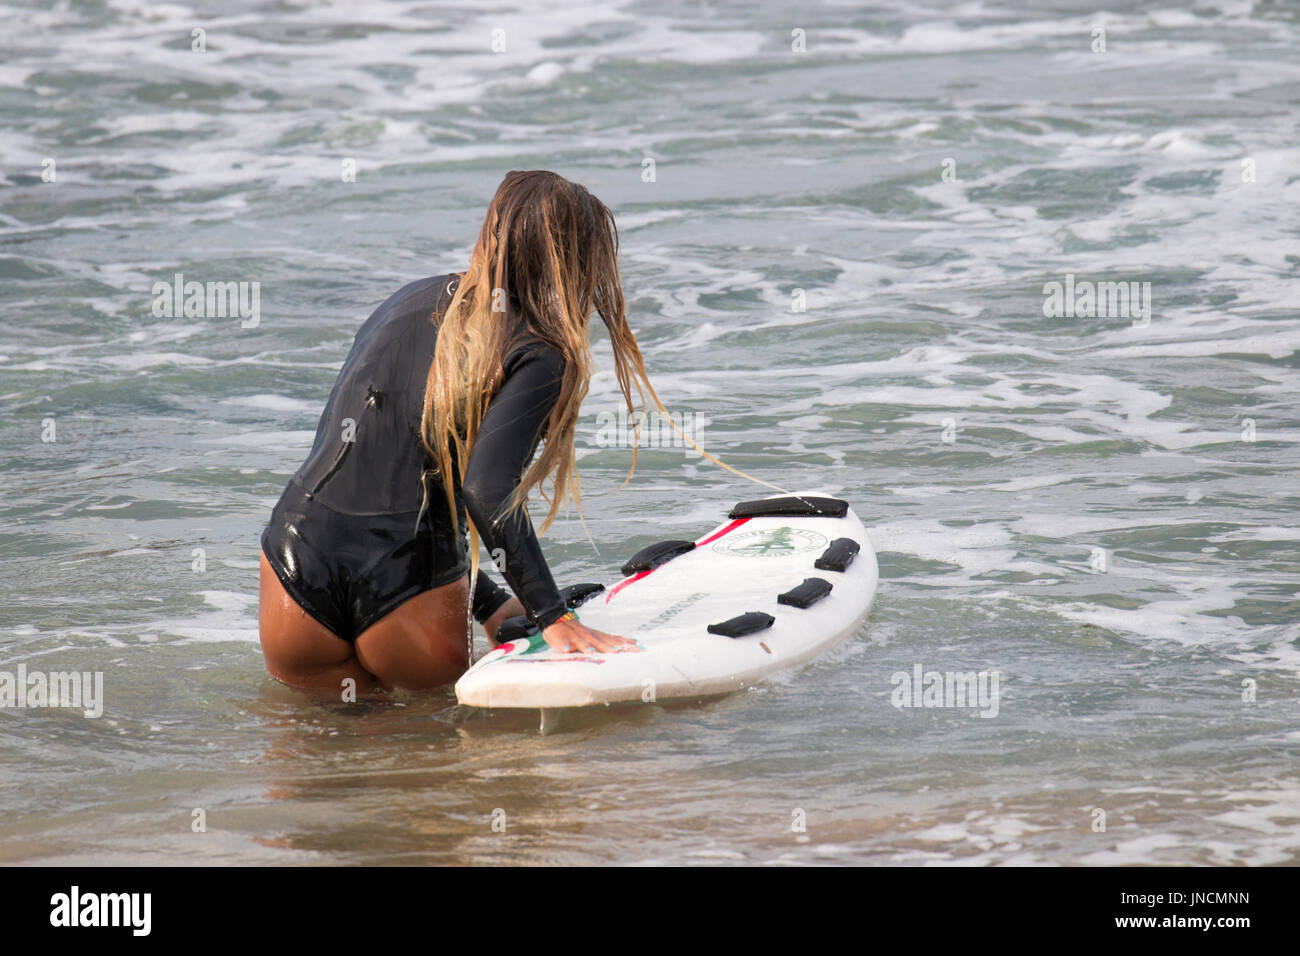 Australian girl in Sydney at the beach with surfboard surfing in the ocean,Sydney,Australia - Stock Image